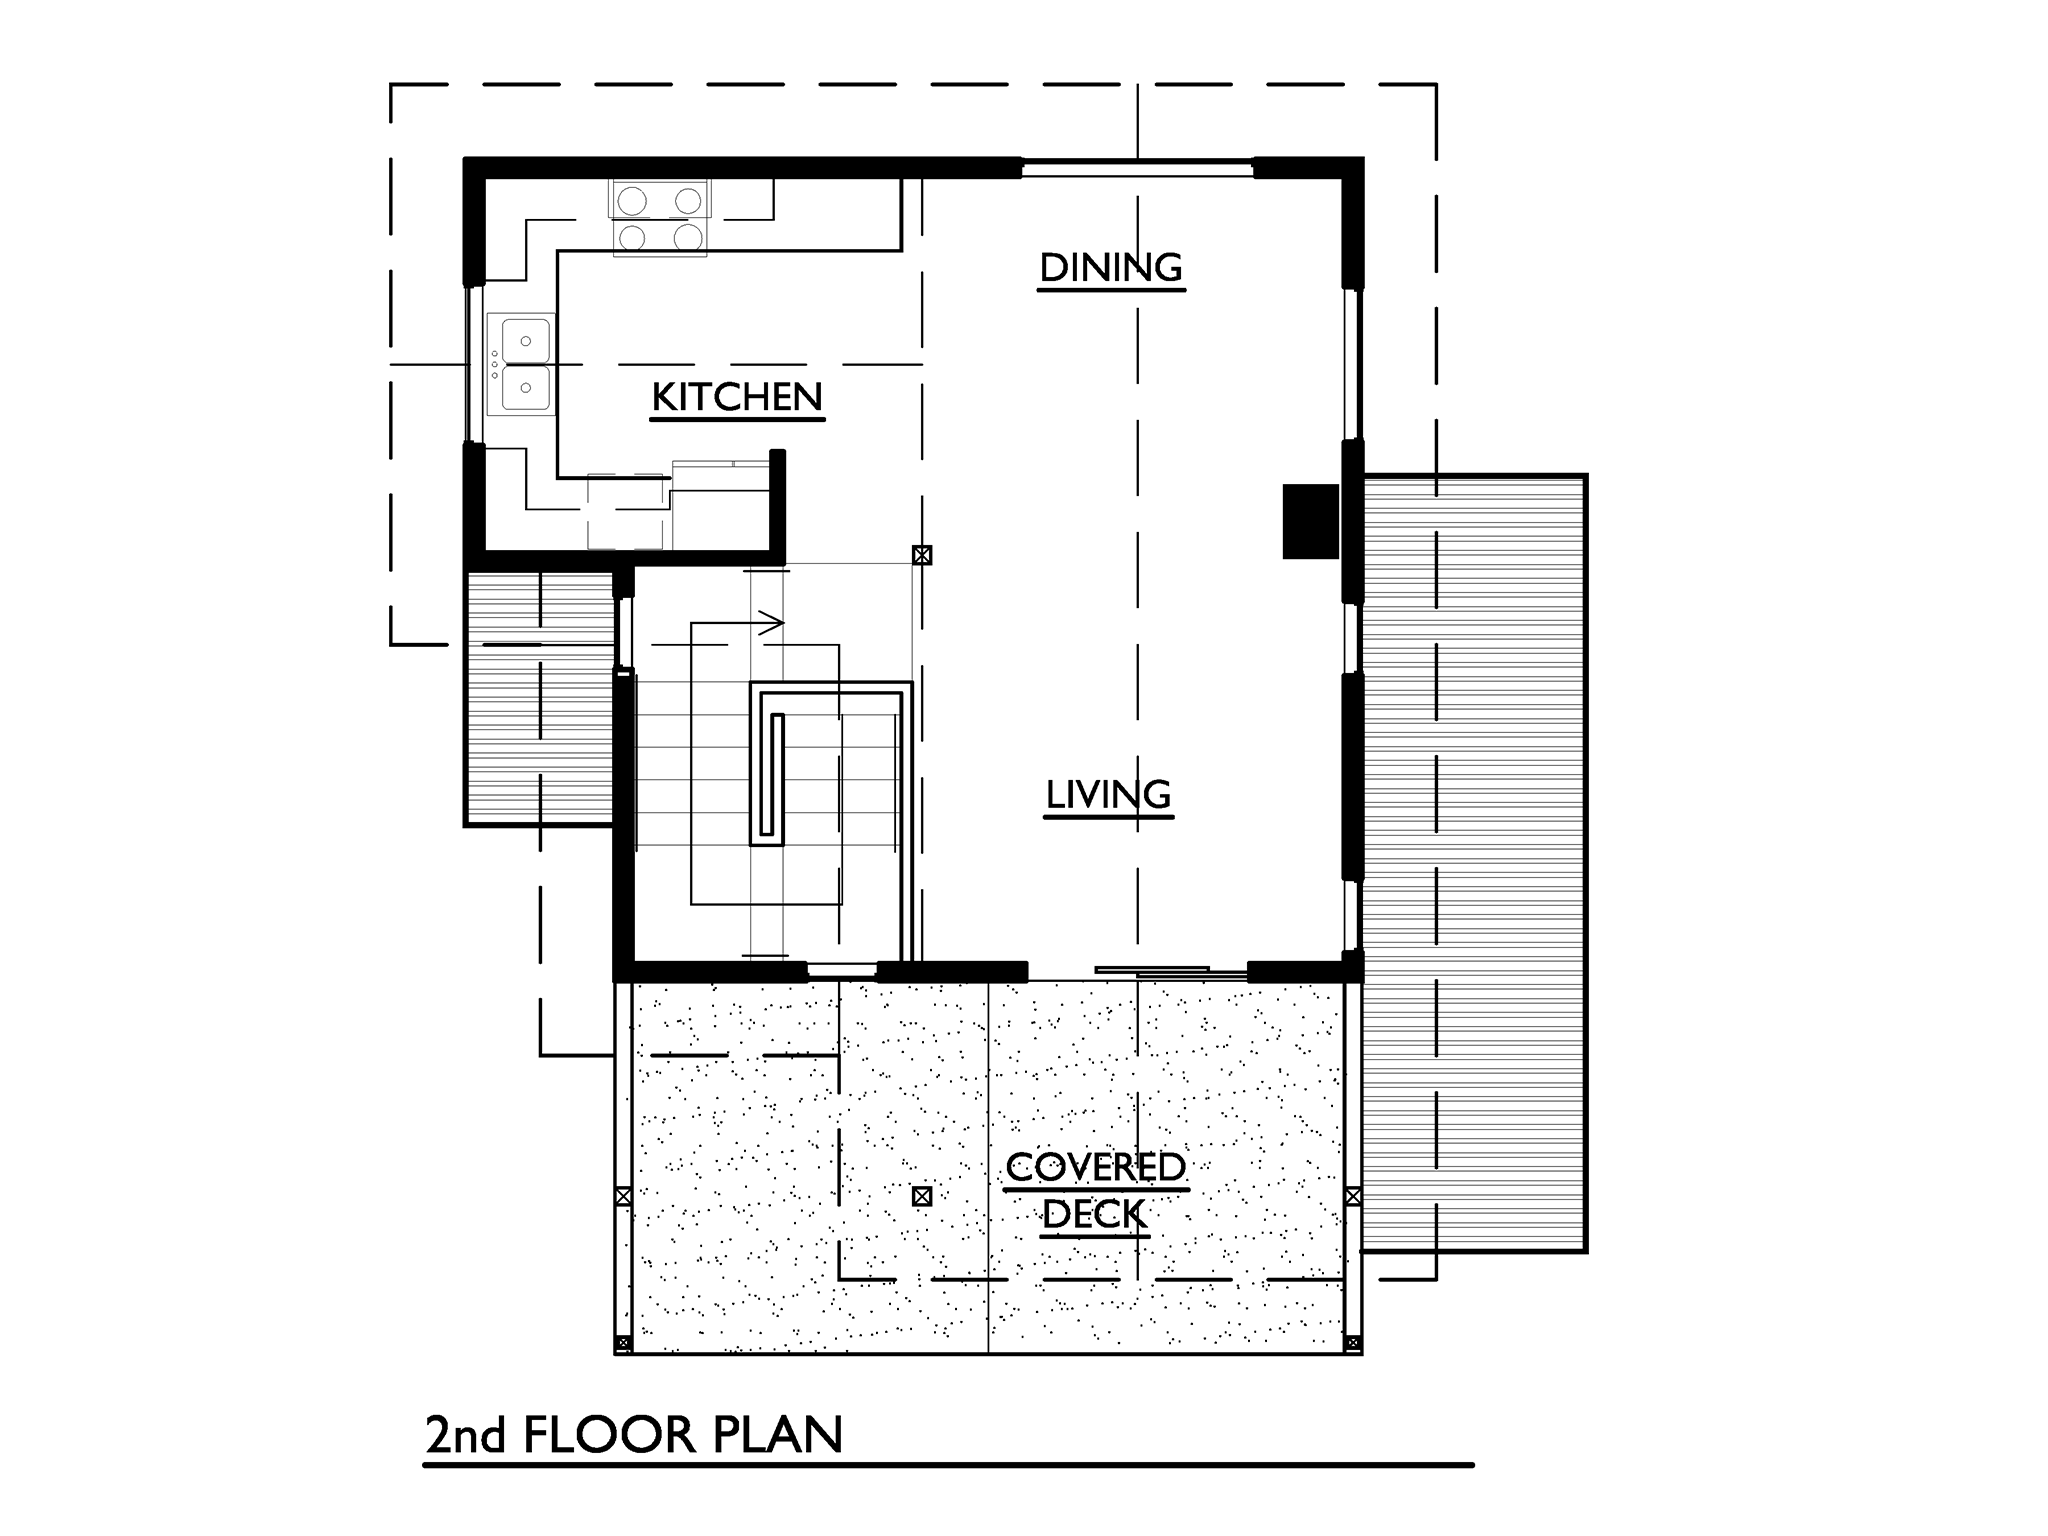 cottage 2 storey 2 bedrooms plan (6)